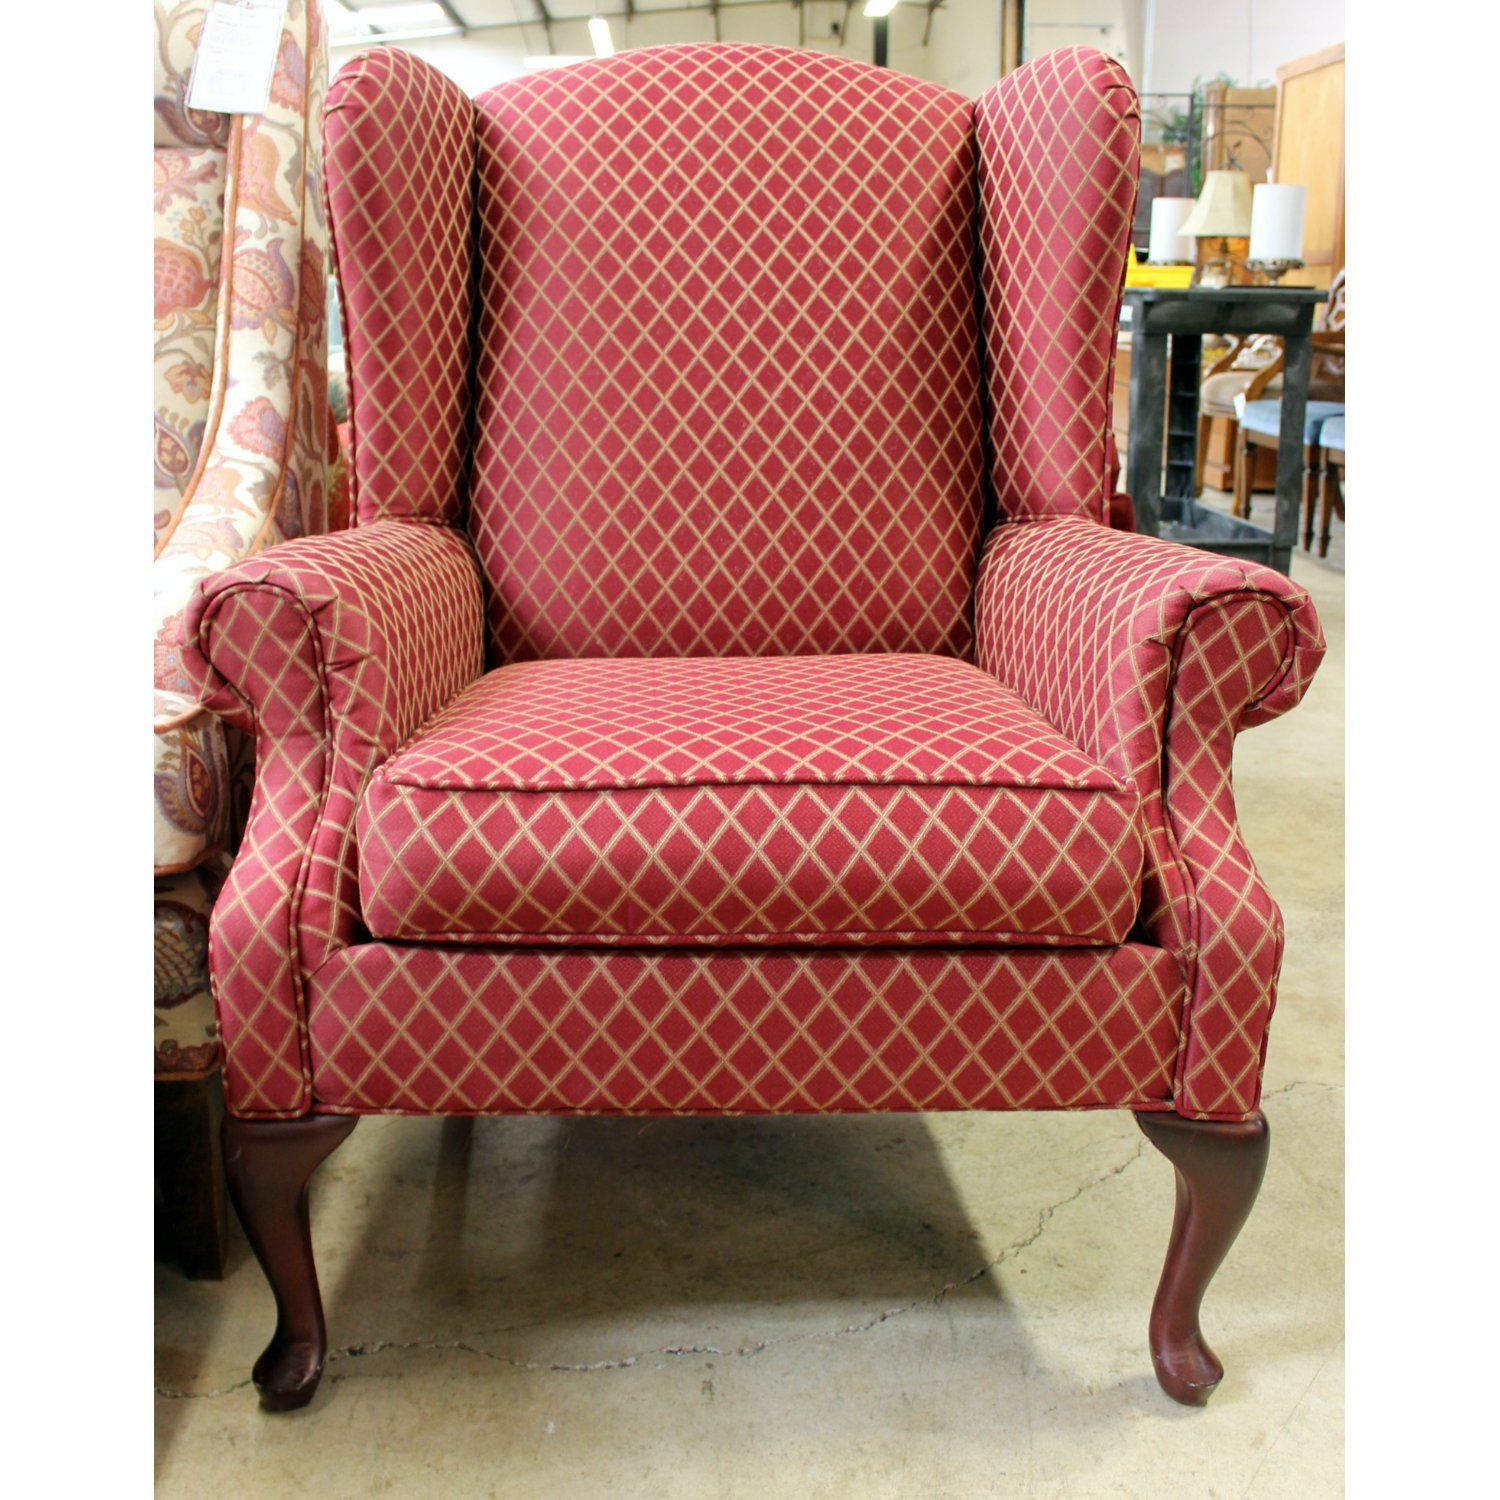 High Quality Consigned Red Wingback Accent Chair For Sale U2013 Upscale Consignment | Chairs  At UpscaleConsignment.com | Pinterest